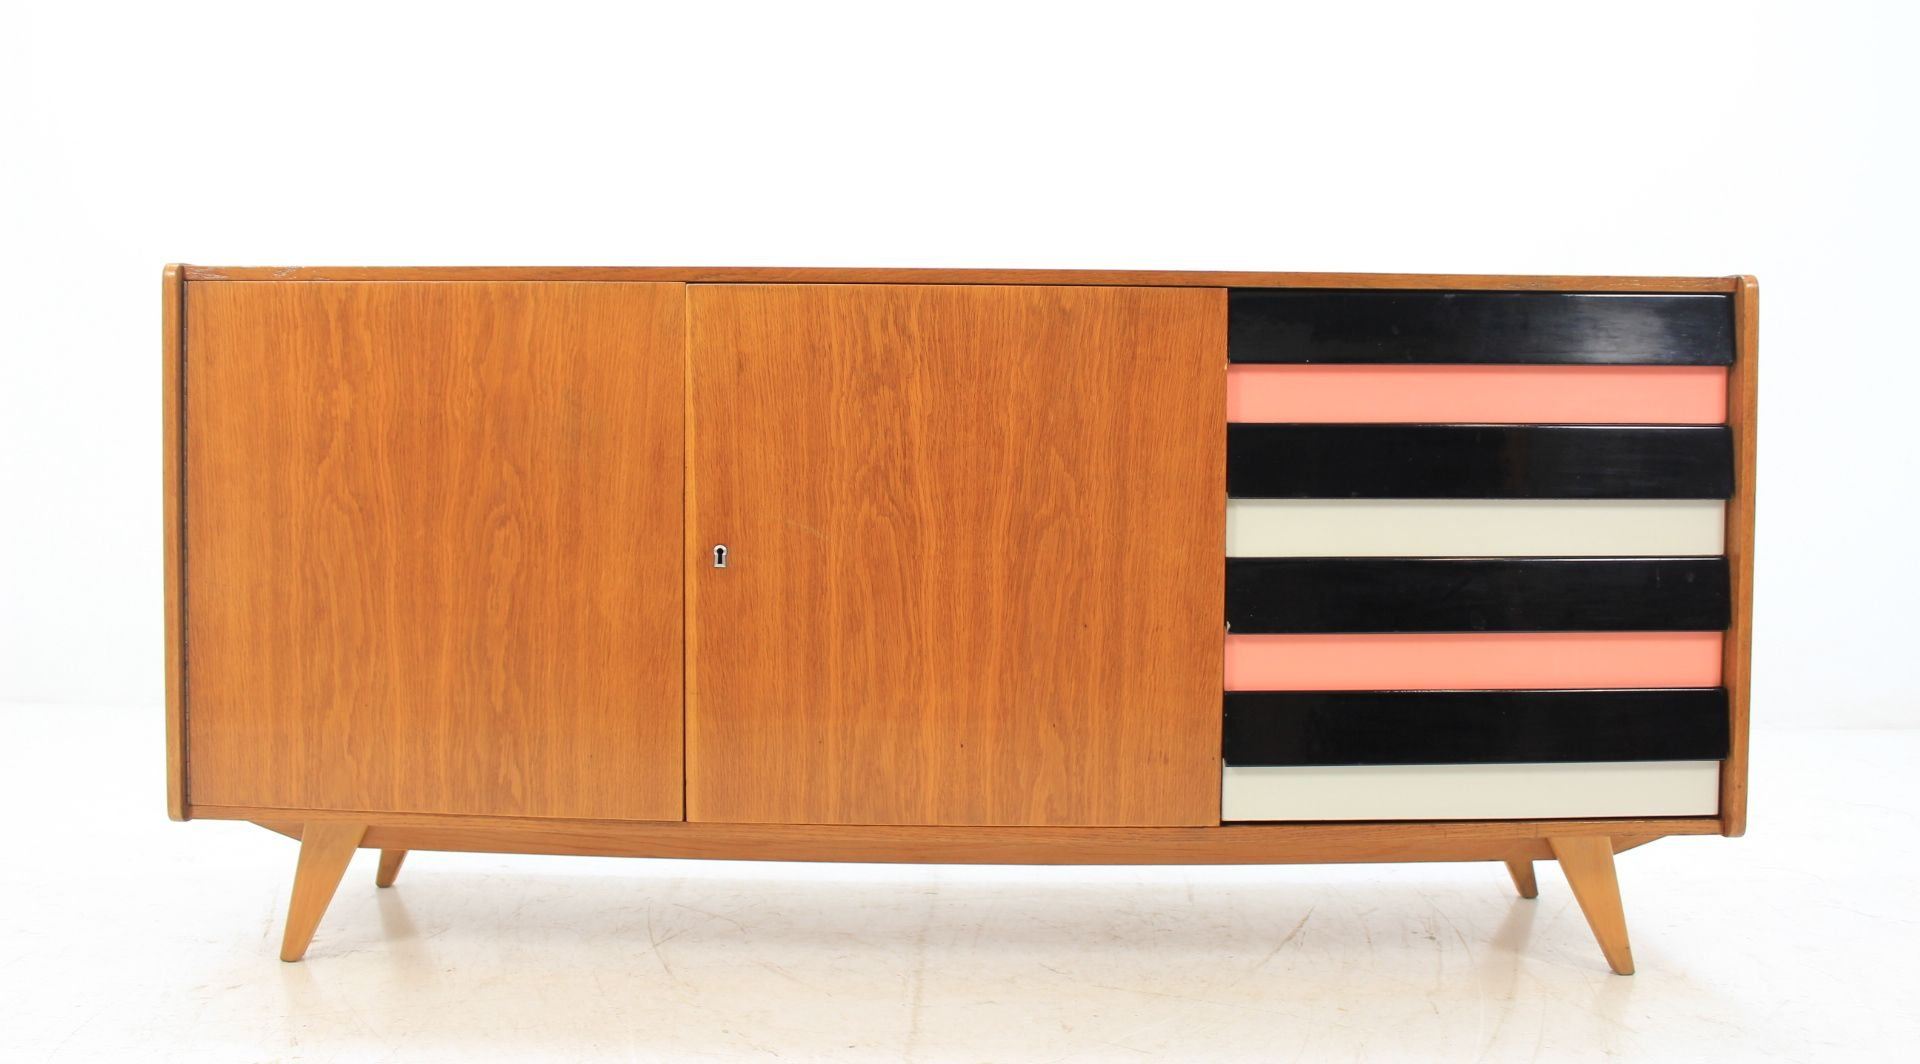 mid century langes sideboard von ji jiroutek f r interier praha 196 cafe konrad vib. Black Bedroom Furniture Sets. Home Design Ideas